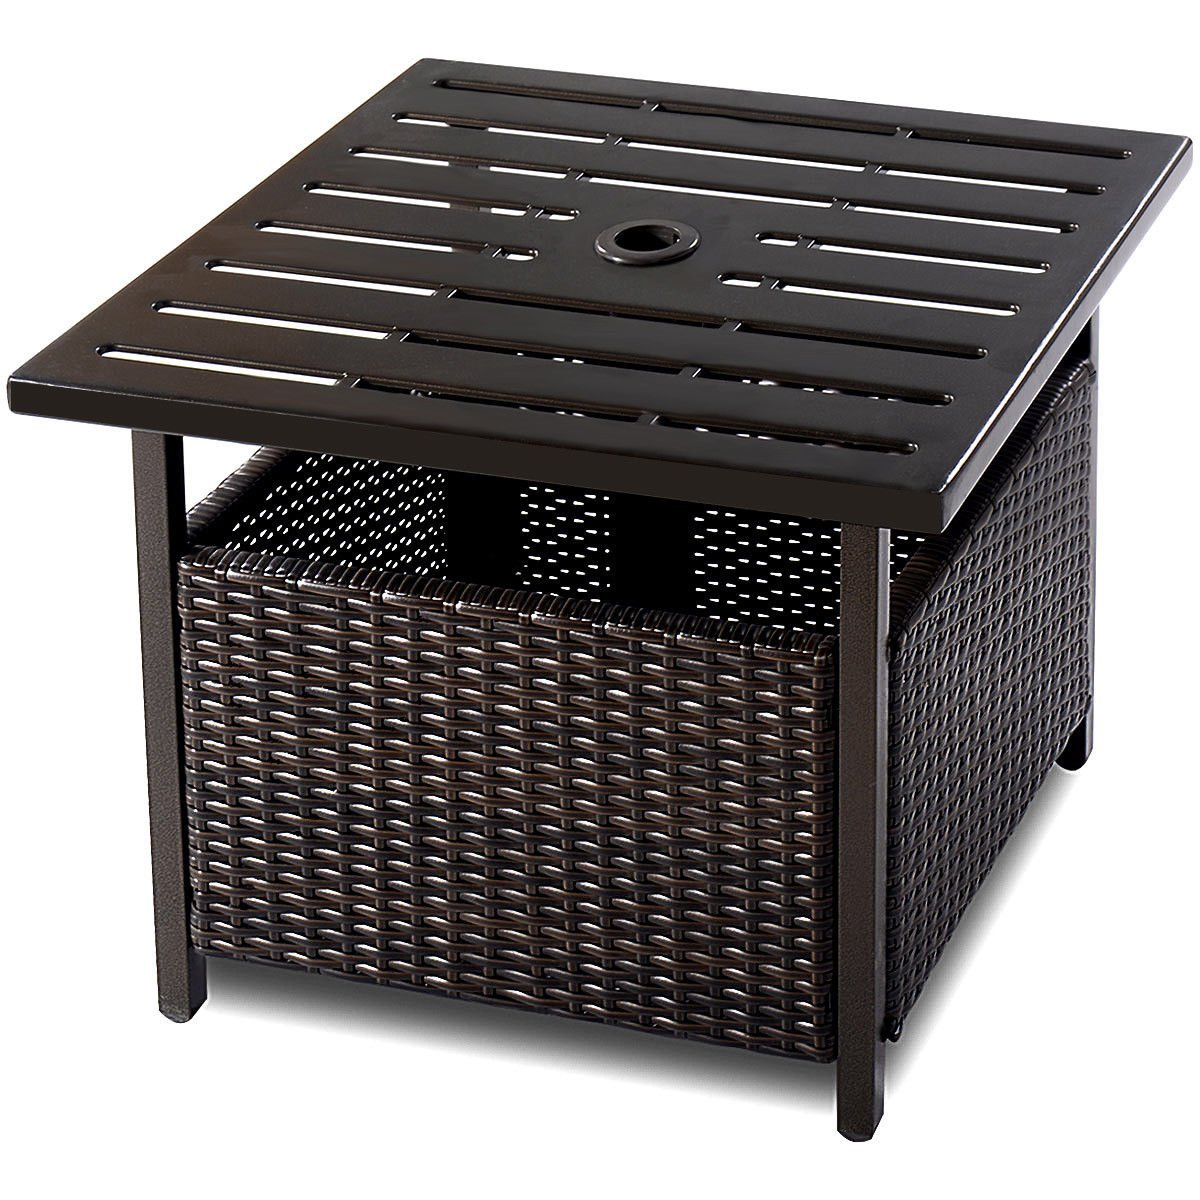 garden table rattan find line outdoor wicker side brown get quotations energy square furniture deck patio pool steel top slim console with drawers large round dining front porch